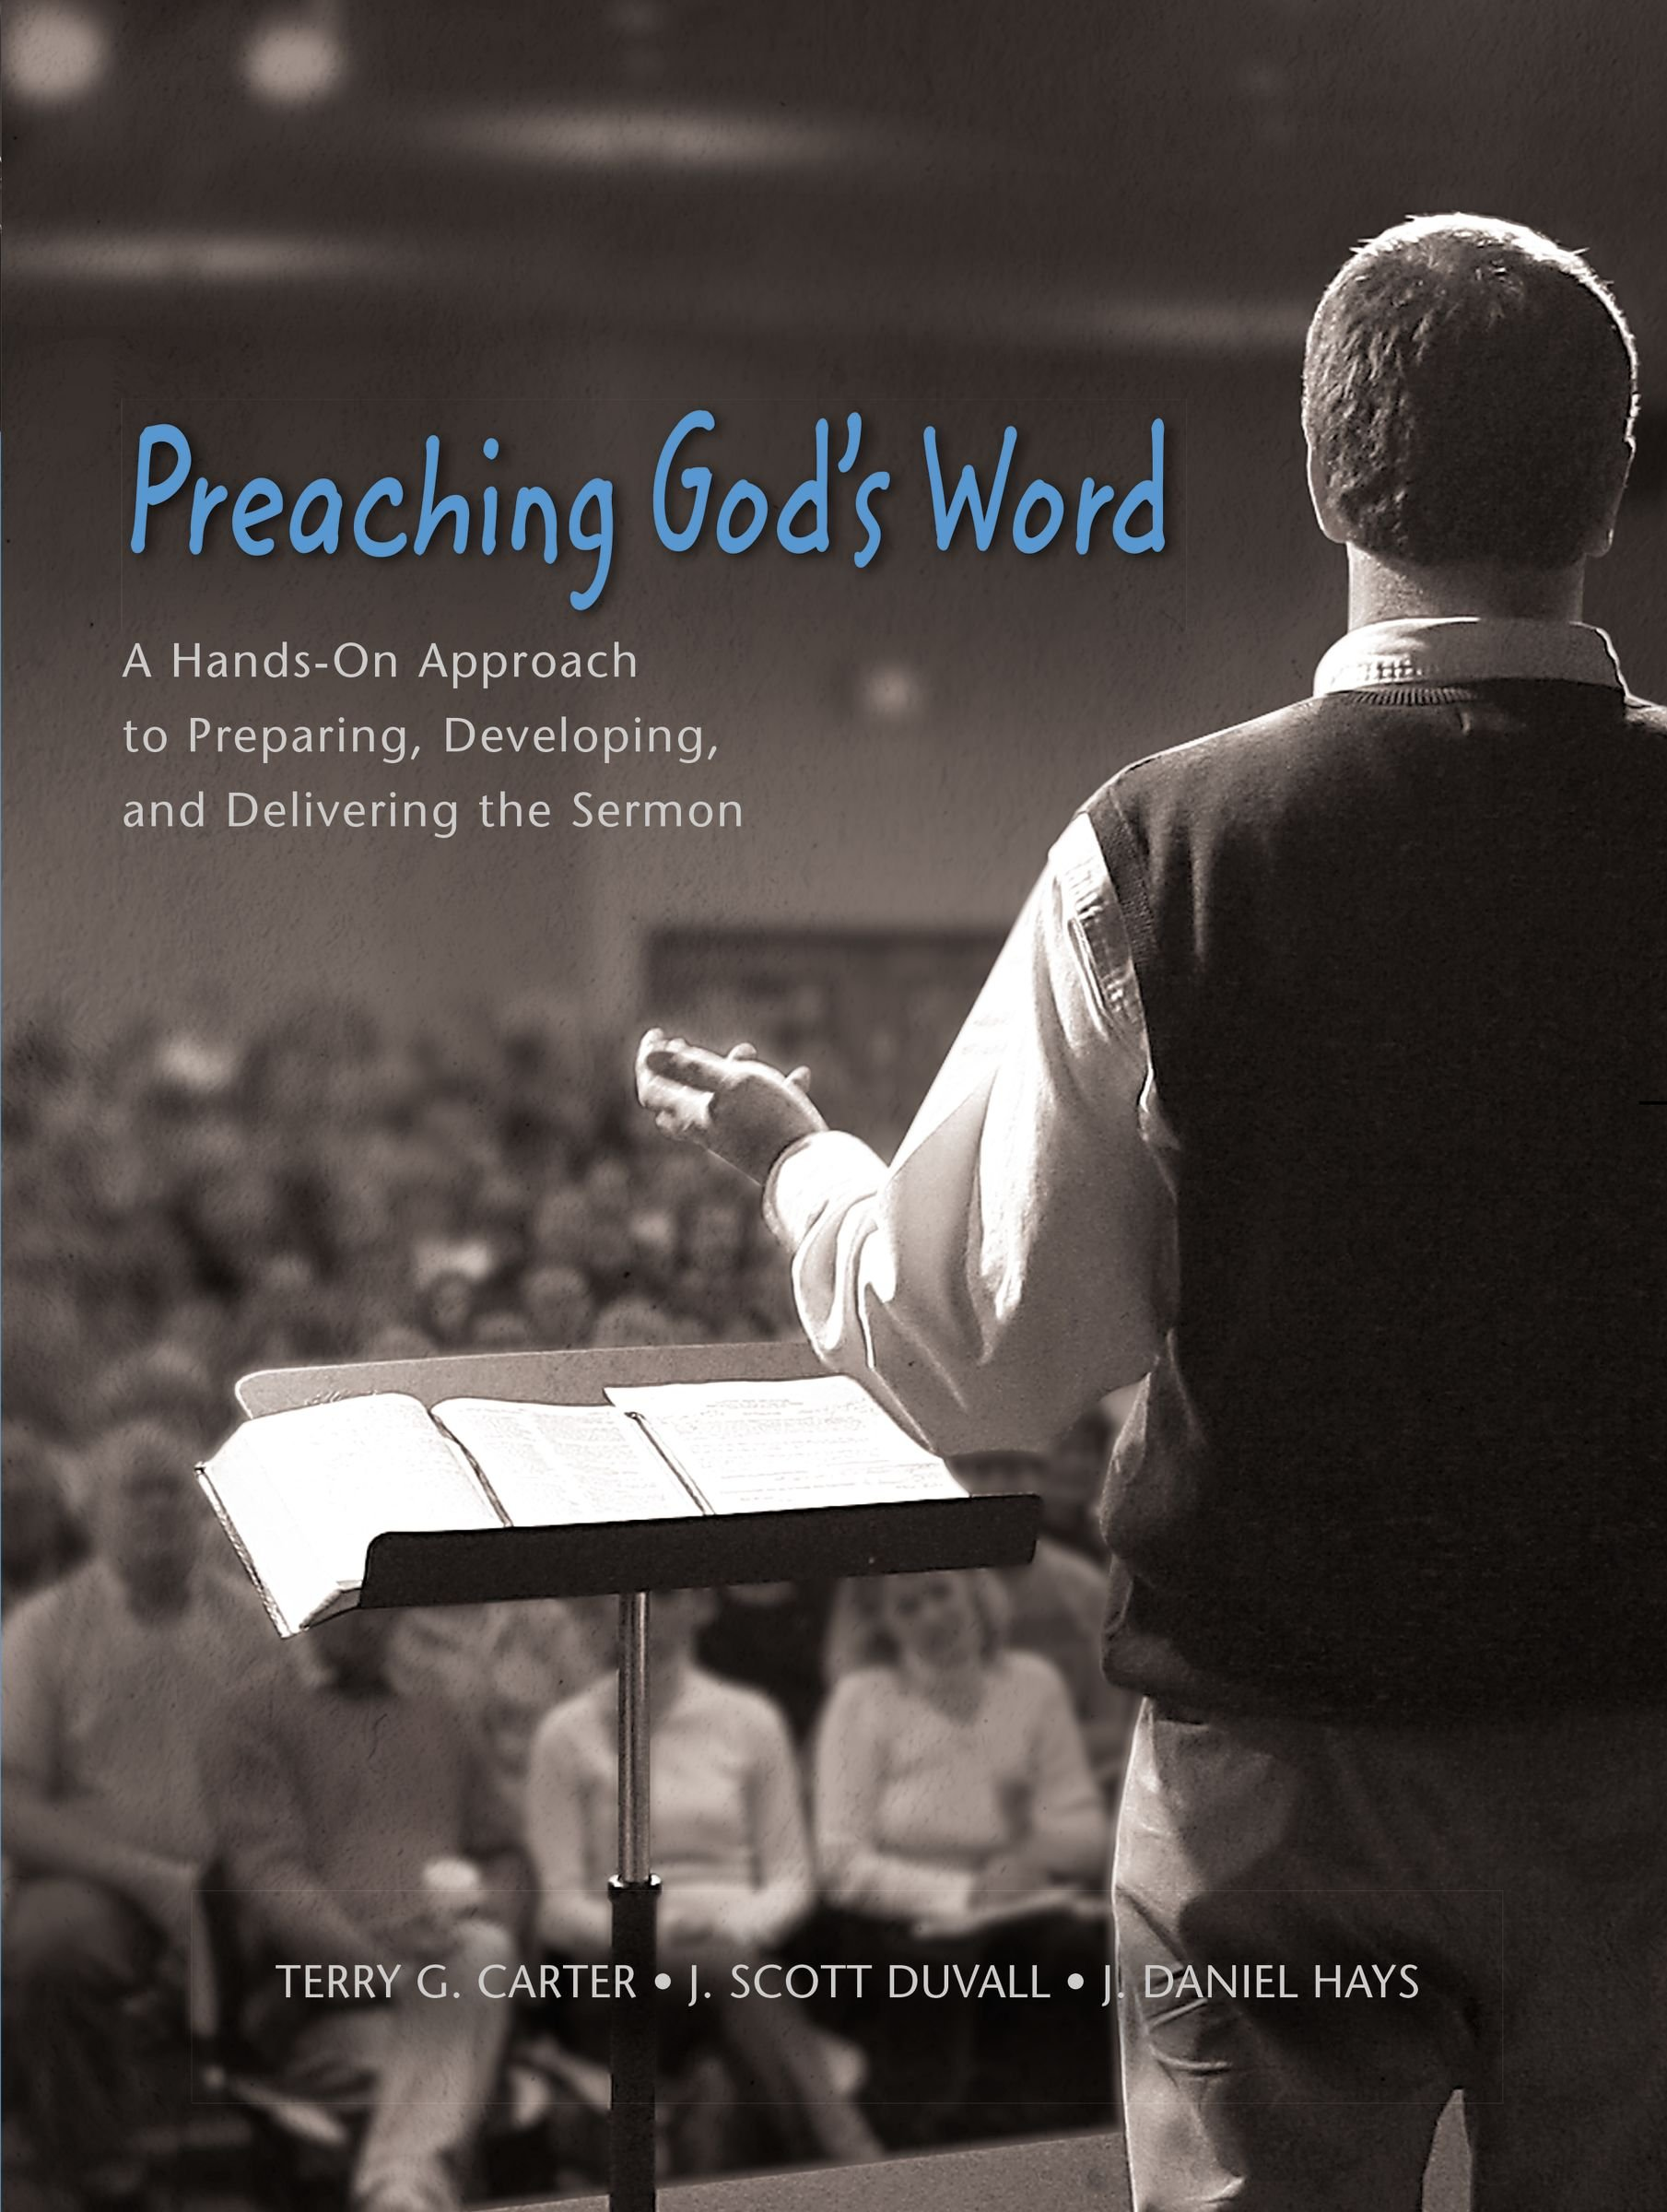 Preaching God's Word: A Hands-On Approach to Preparing